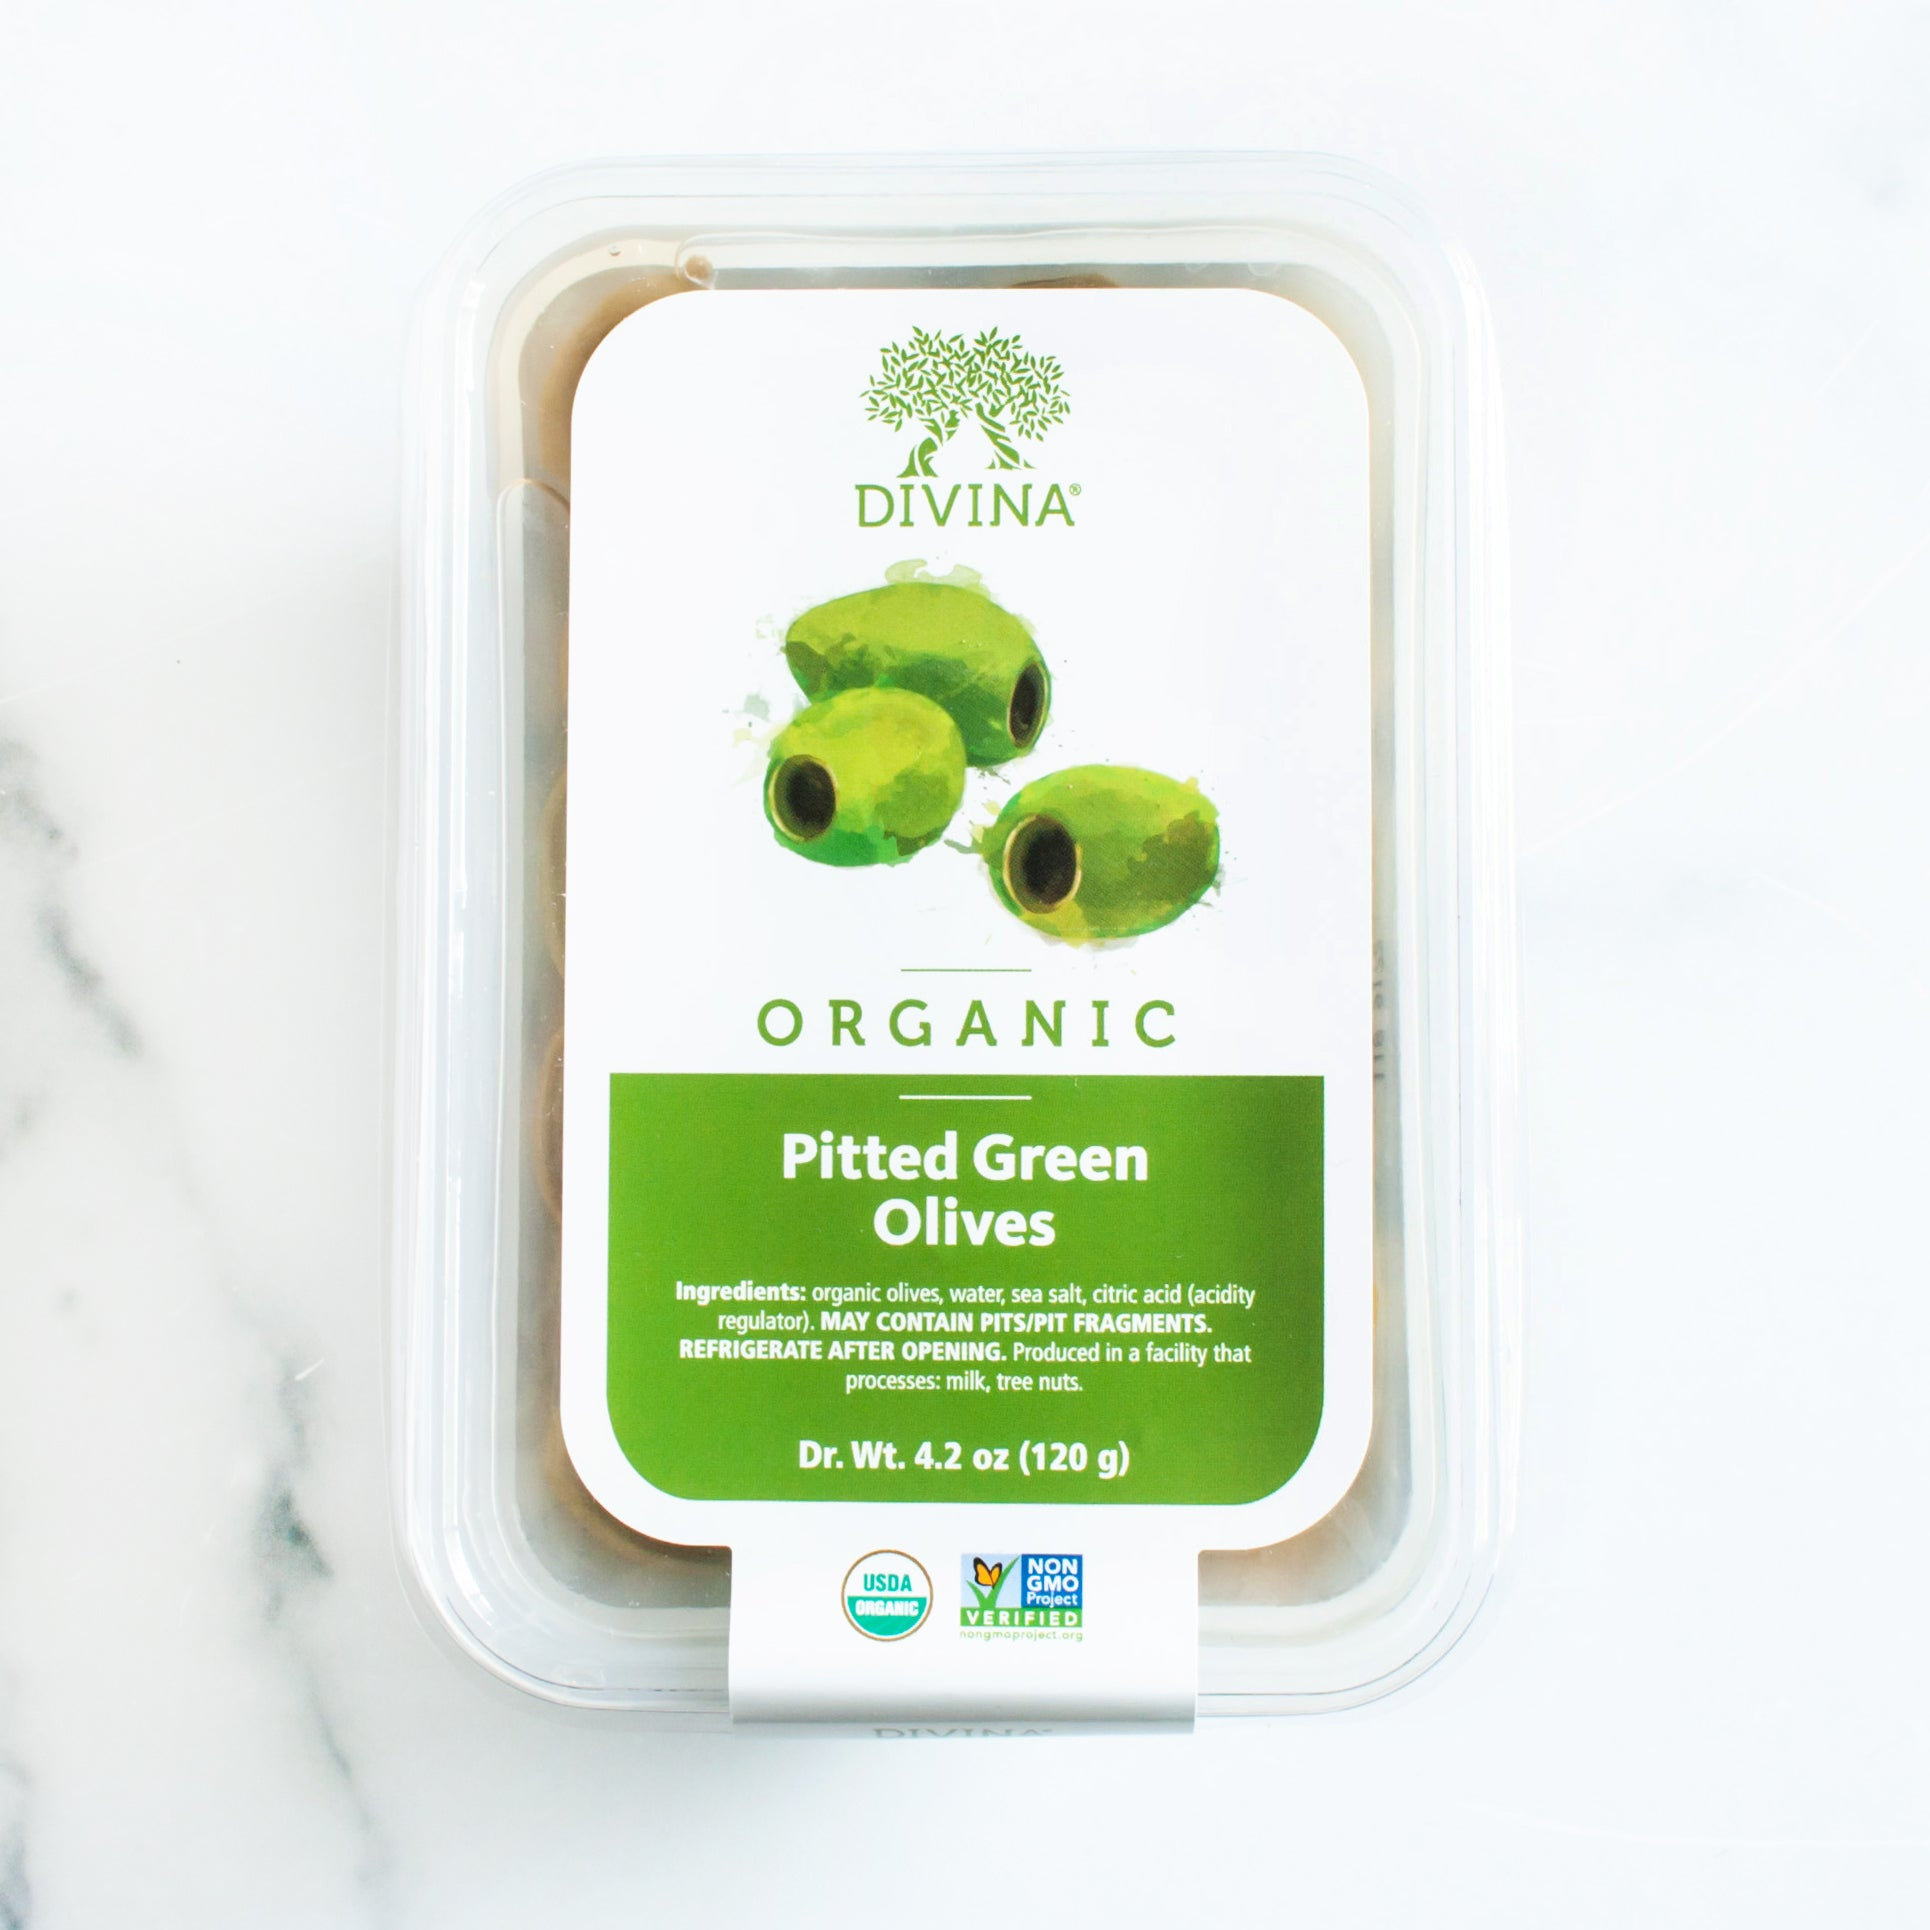 Organic Pitted Green Olives